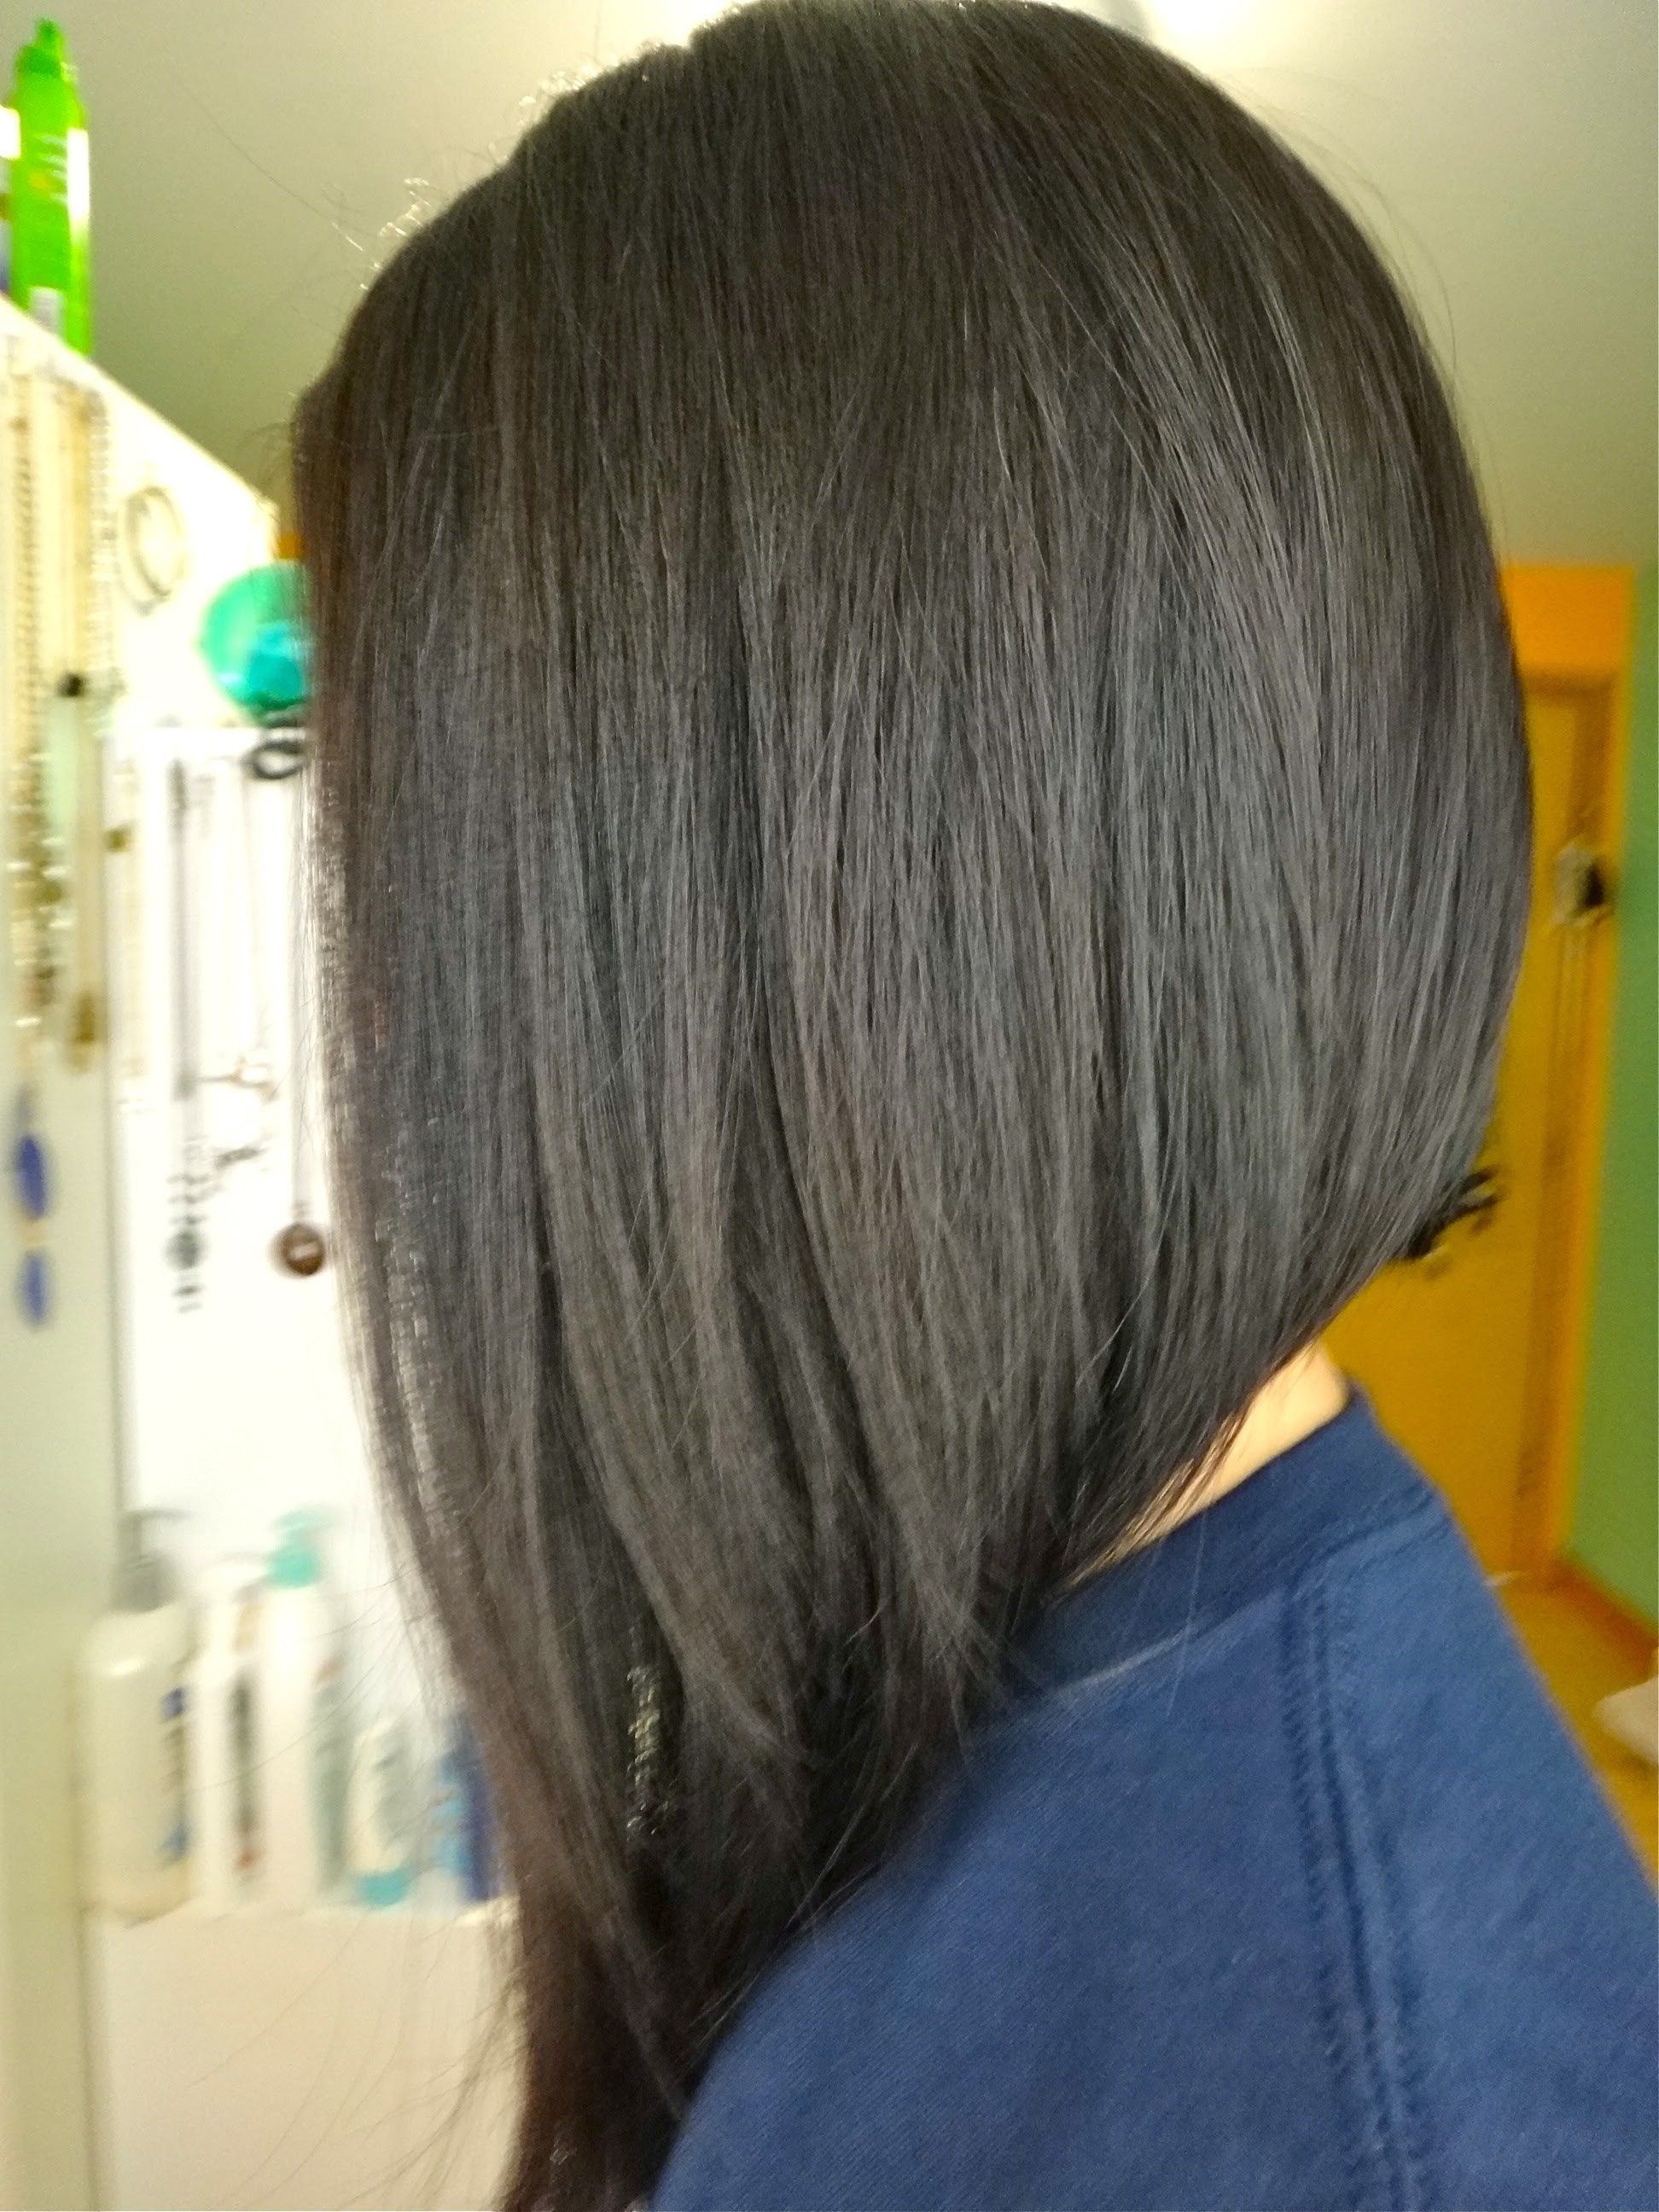 Long bob haircuts back view long asymmetrical haircut haircuts medium length asymmetrical bob black haircut from side view solutioingenieria Images